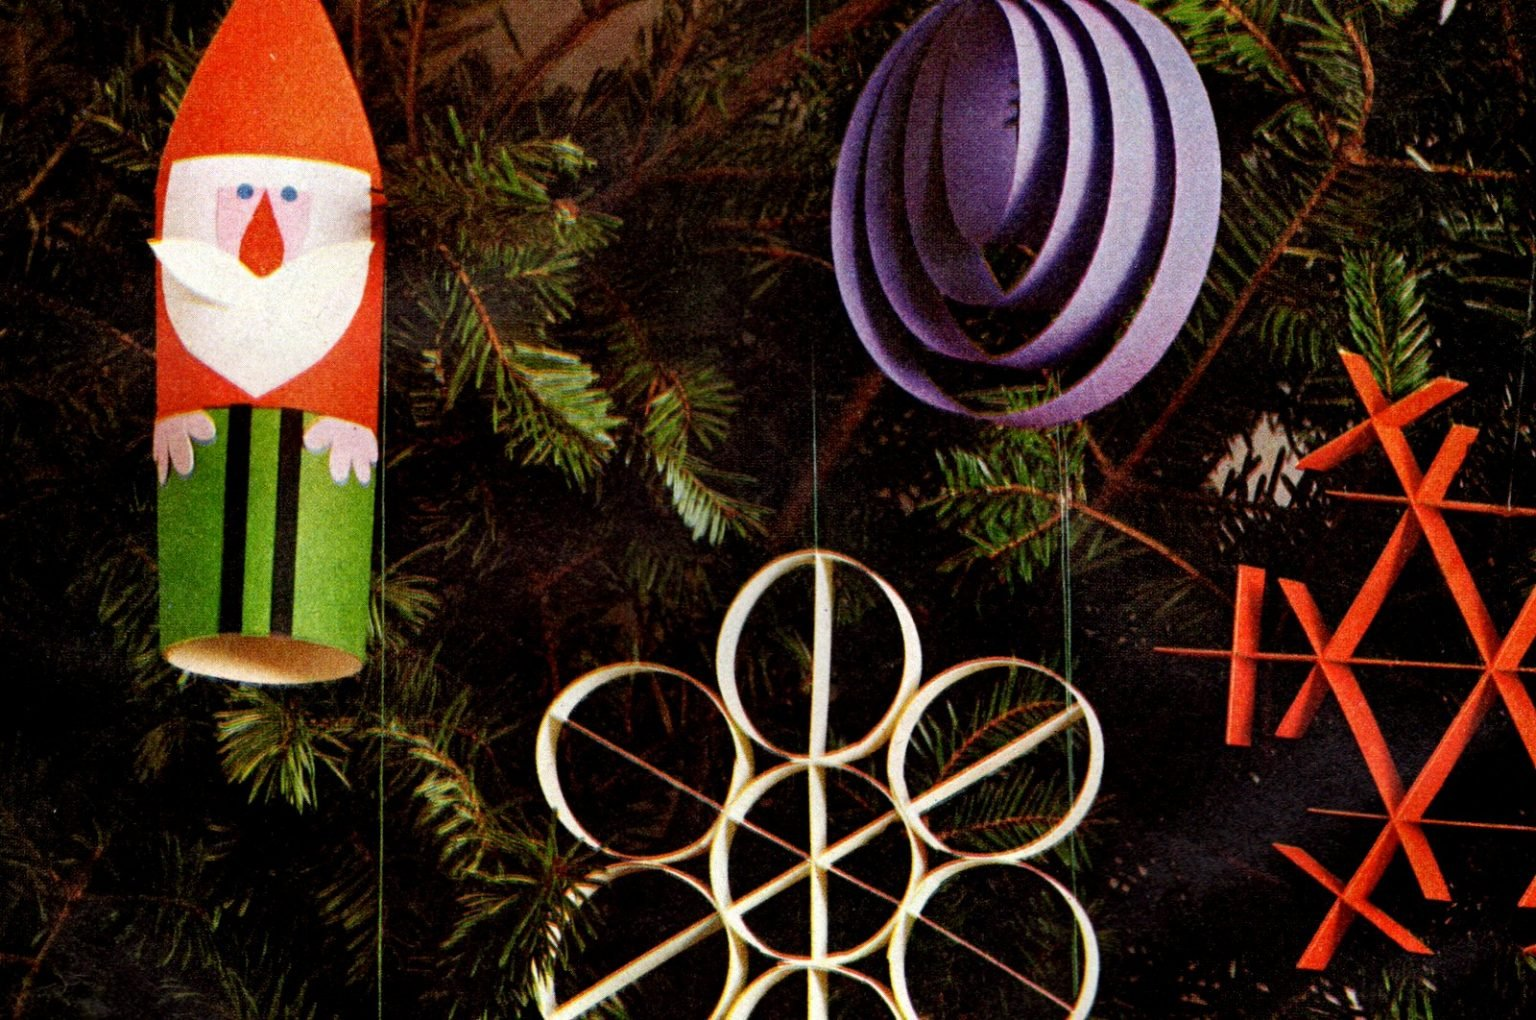 How to make paper Christmas ornaments, the old-fashioned way (1960)